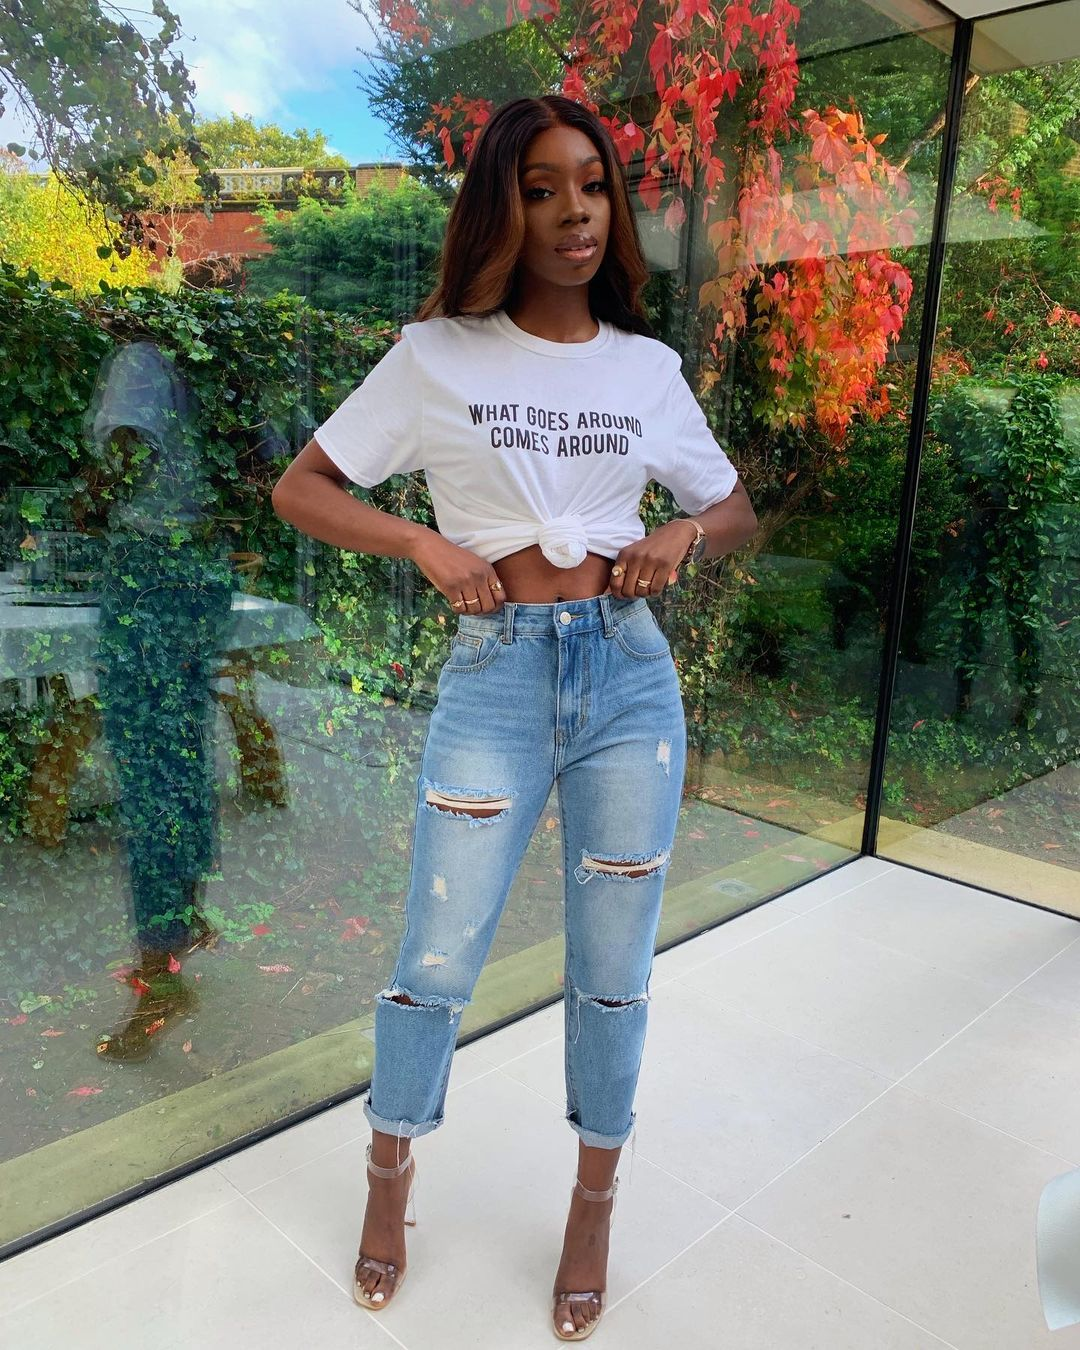 Yewande absolutely looking ready for the